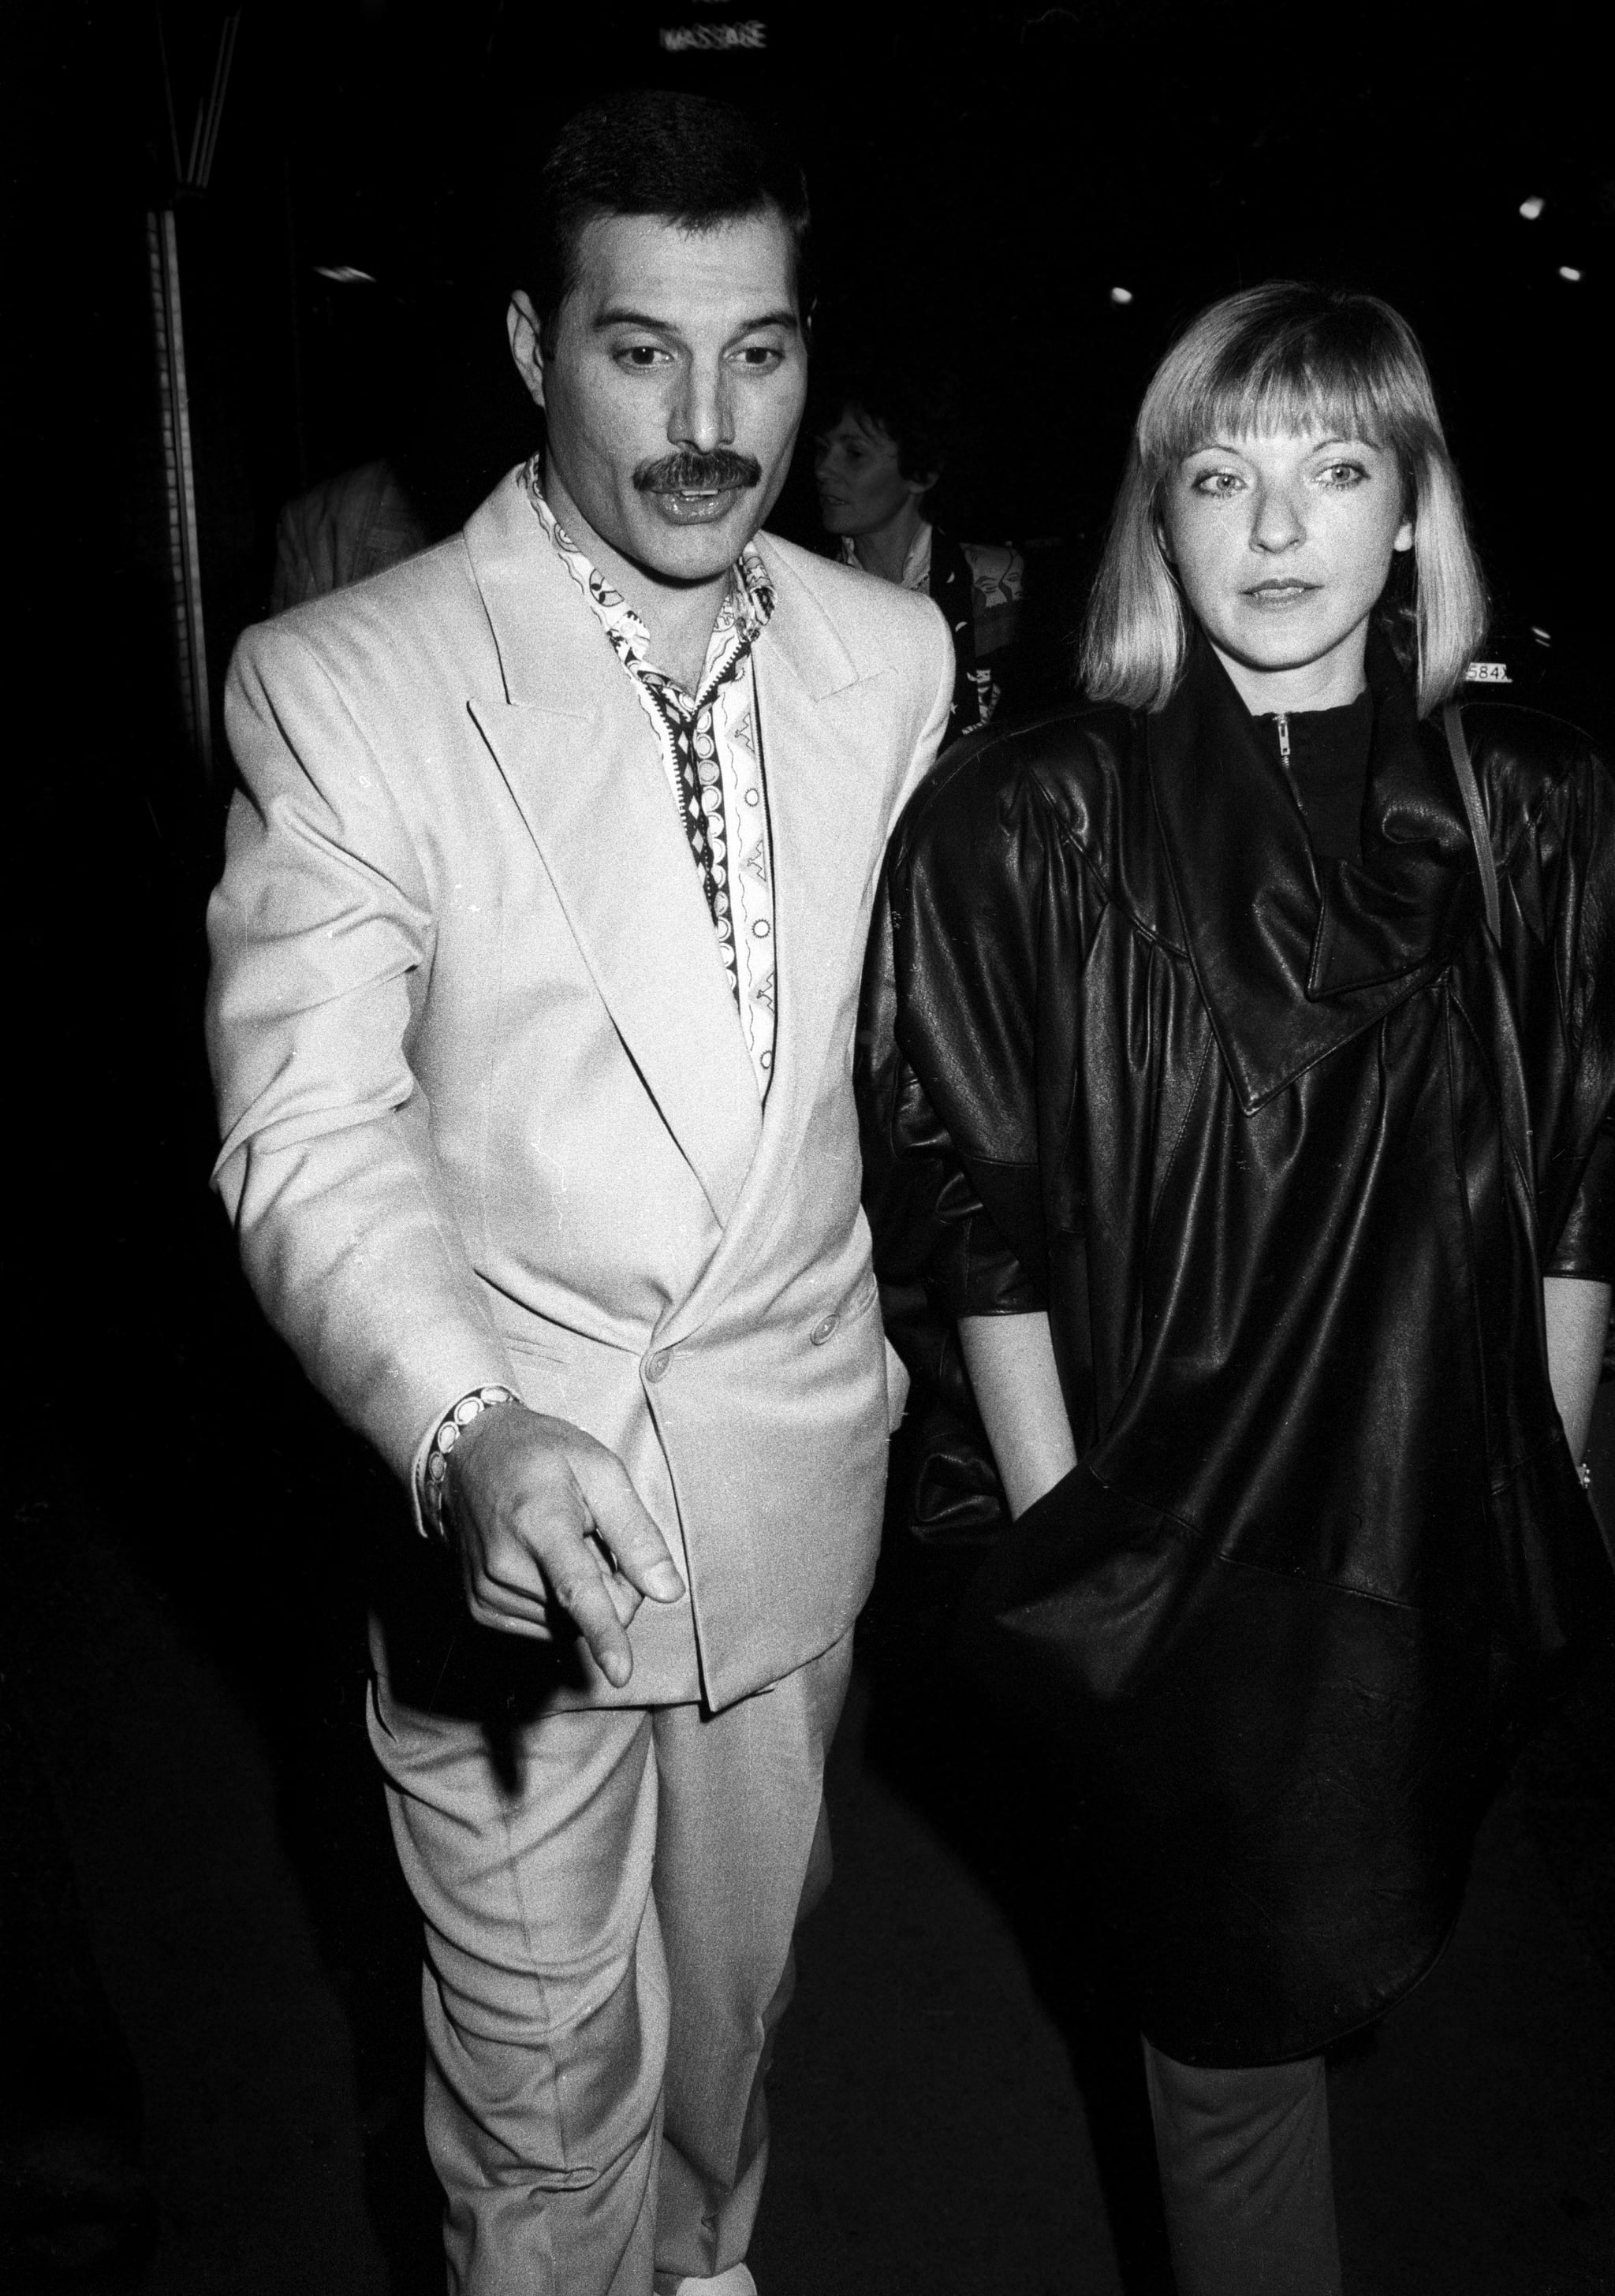 LONDON, UNITED KINGDOM - CIRCA 1988: Freddie Mercury with girlfriend Mary Austin on circa 1988 in London, England. (Photo by Tom Wargacki/WireImage)